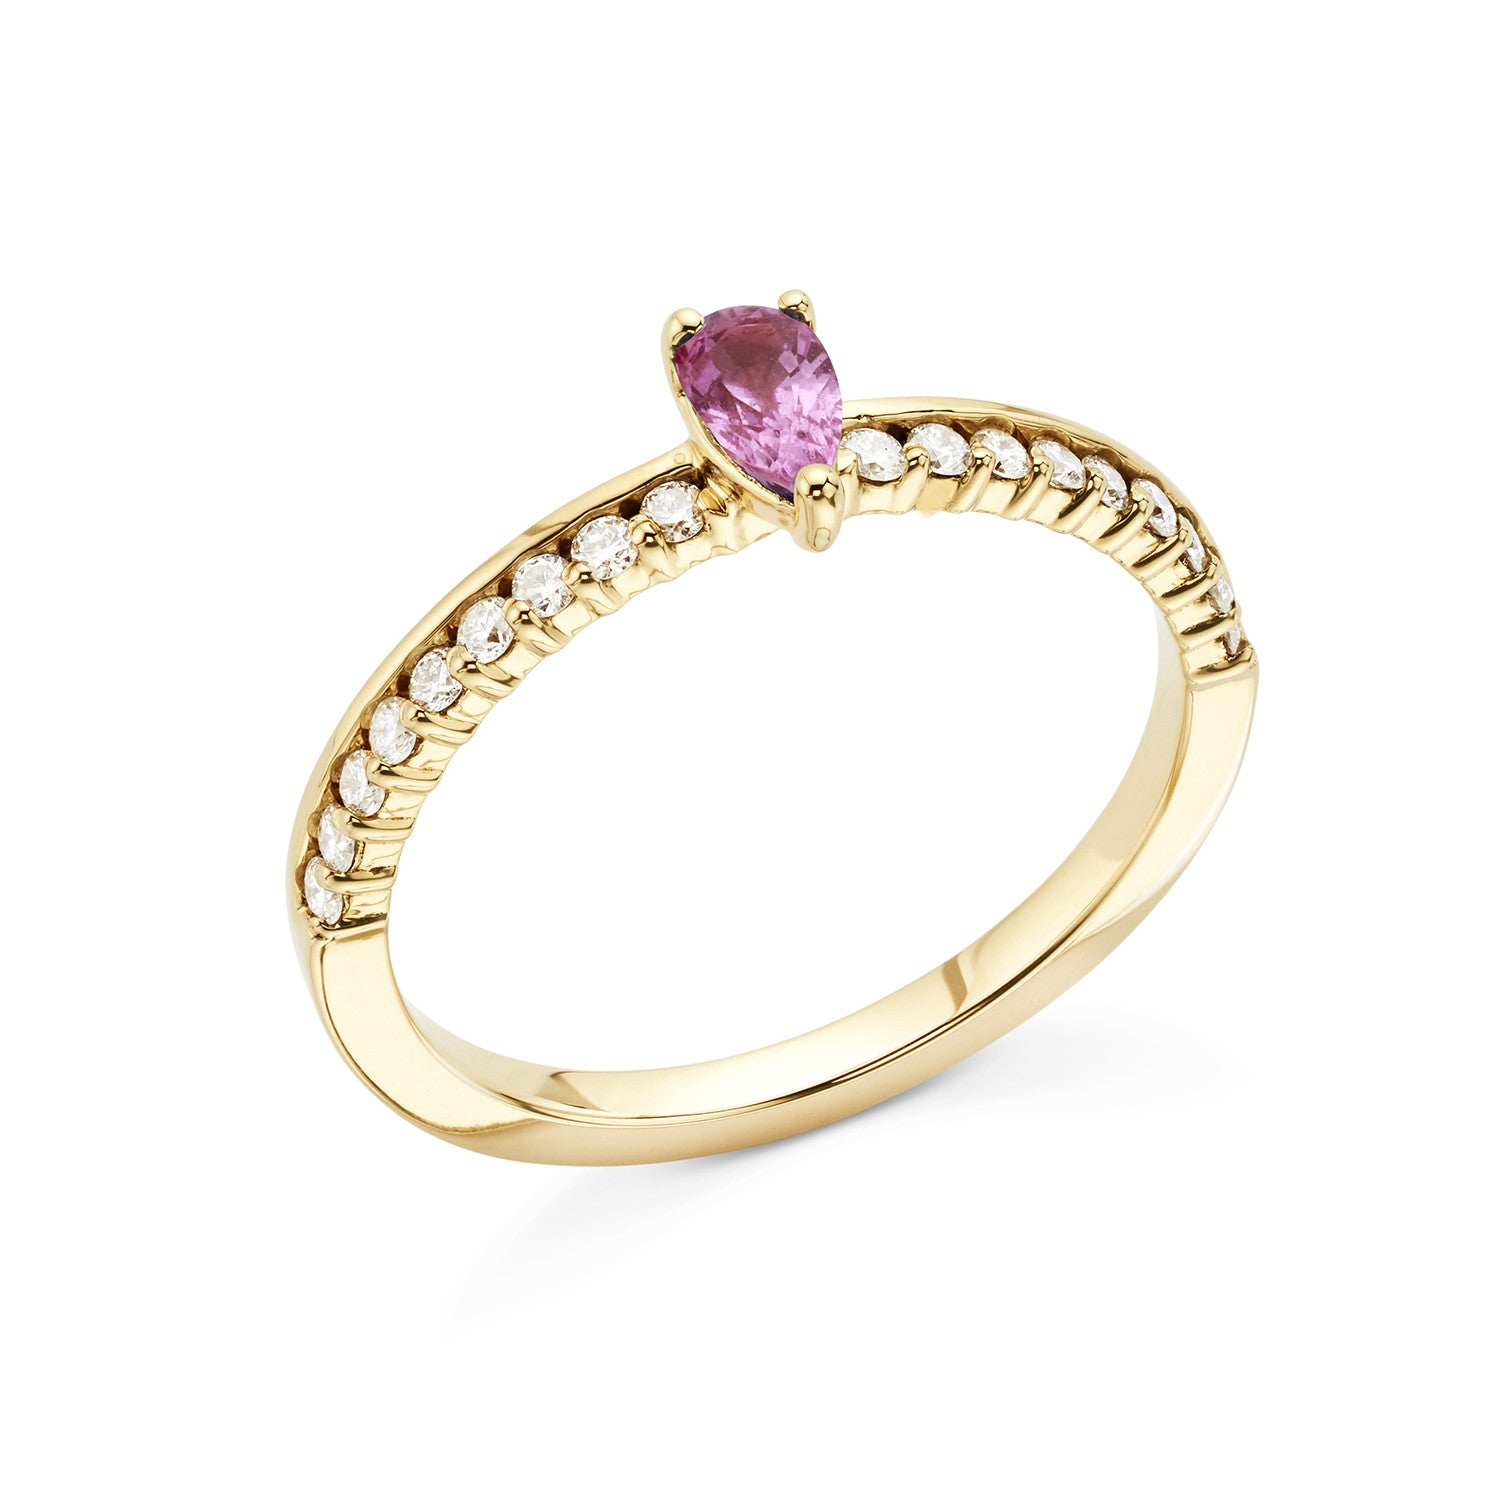 mirella ring diamonds faldini rosa pink sapphire rings center gold stone quadrado products